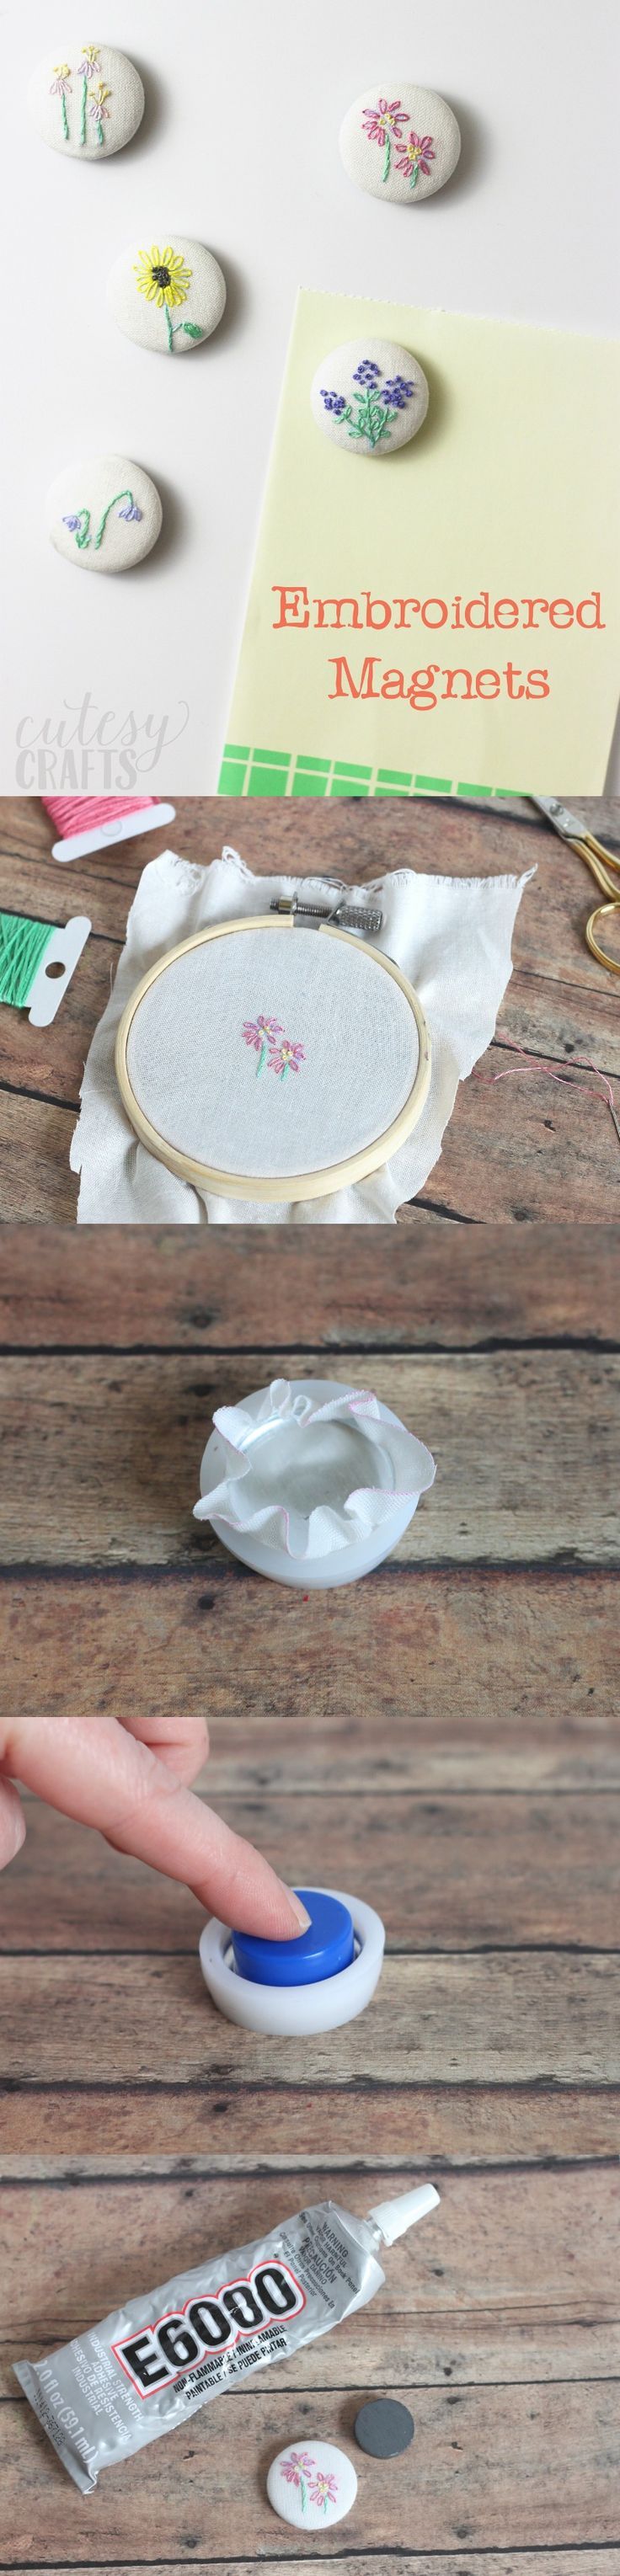 If you love the look of hand embroidery, these DIY magnets are perfect for you. The delicate floral pattern is so pretty! These make great gifts too. via @diy_candy